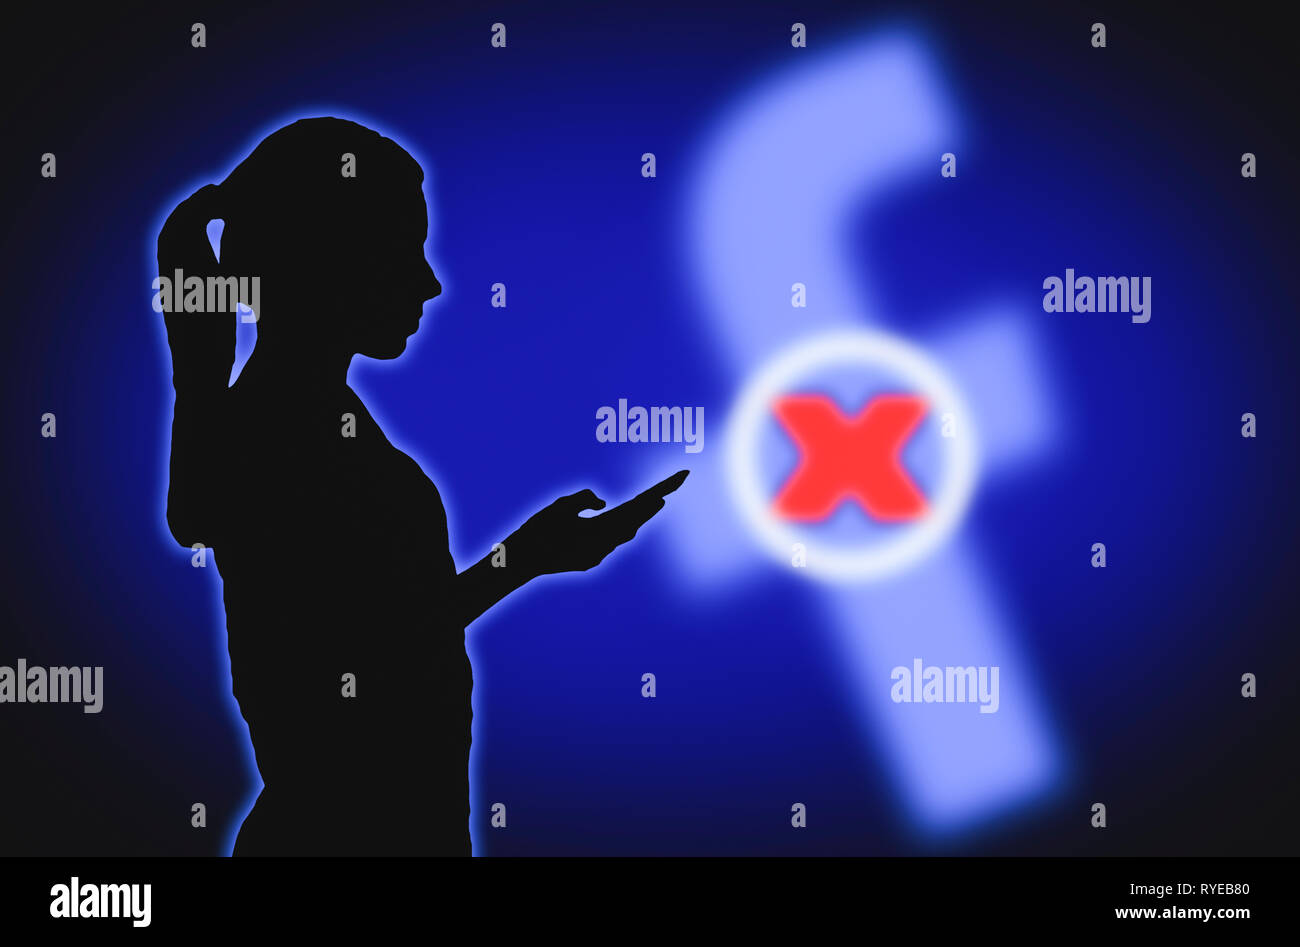 Illustration showing silhouette of a woman holding a mobile phone closing Facebook account. Deleting, terminating, removing or deactivating Facebook. - Stock Image